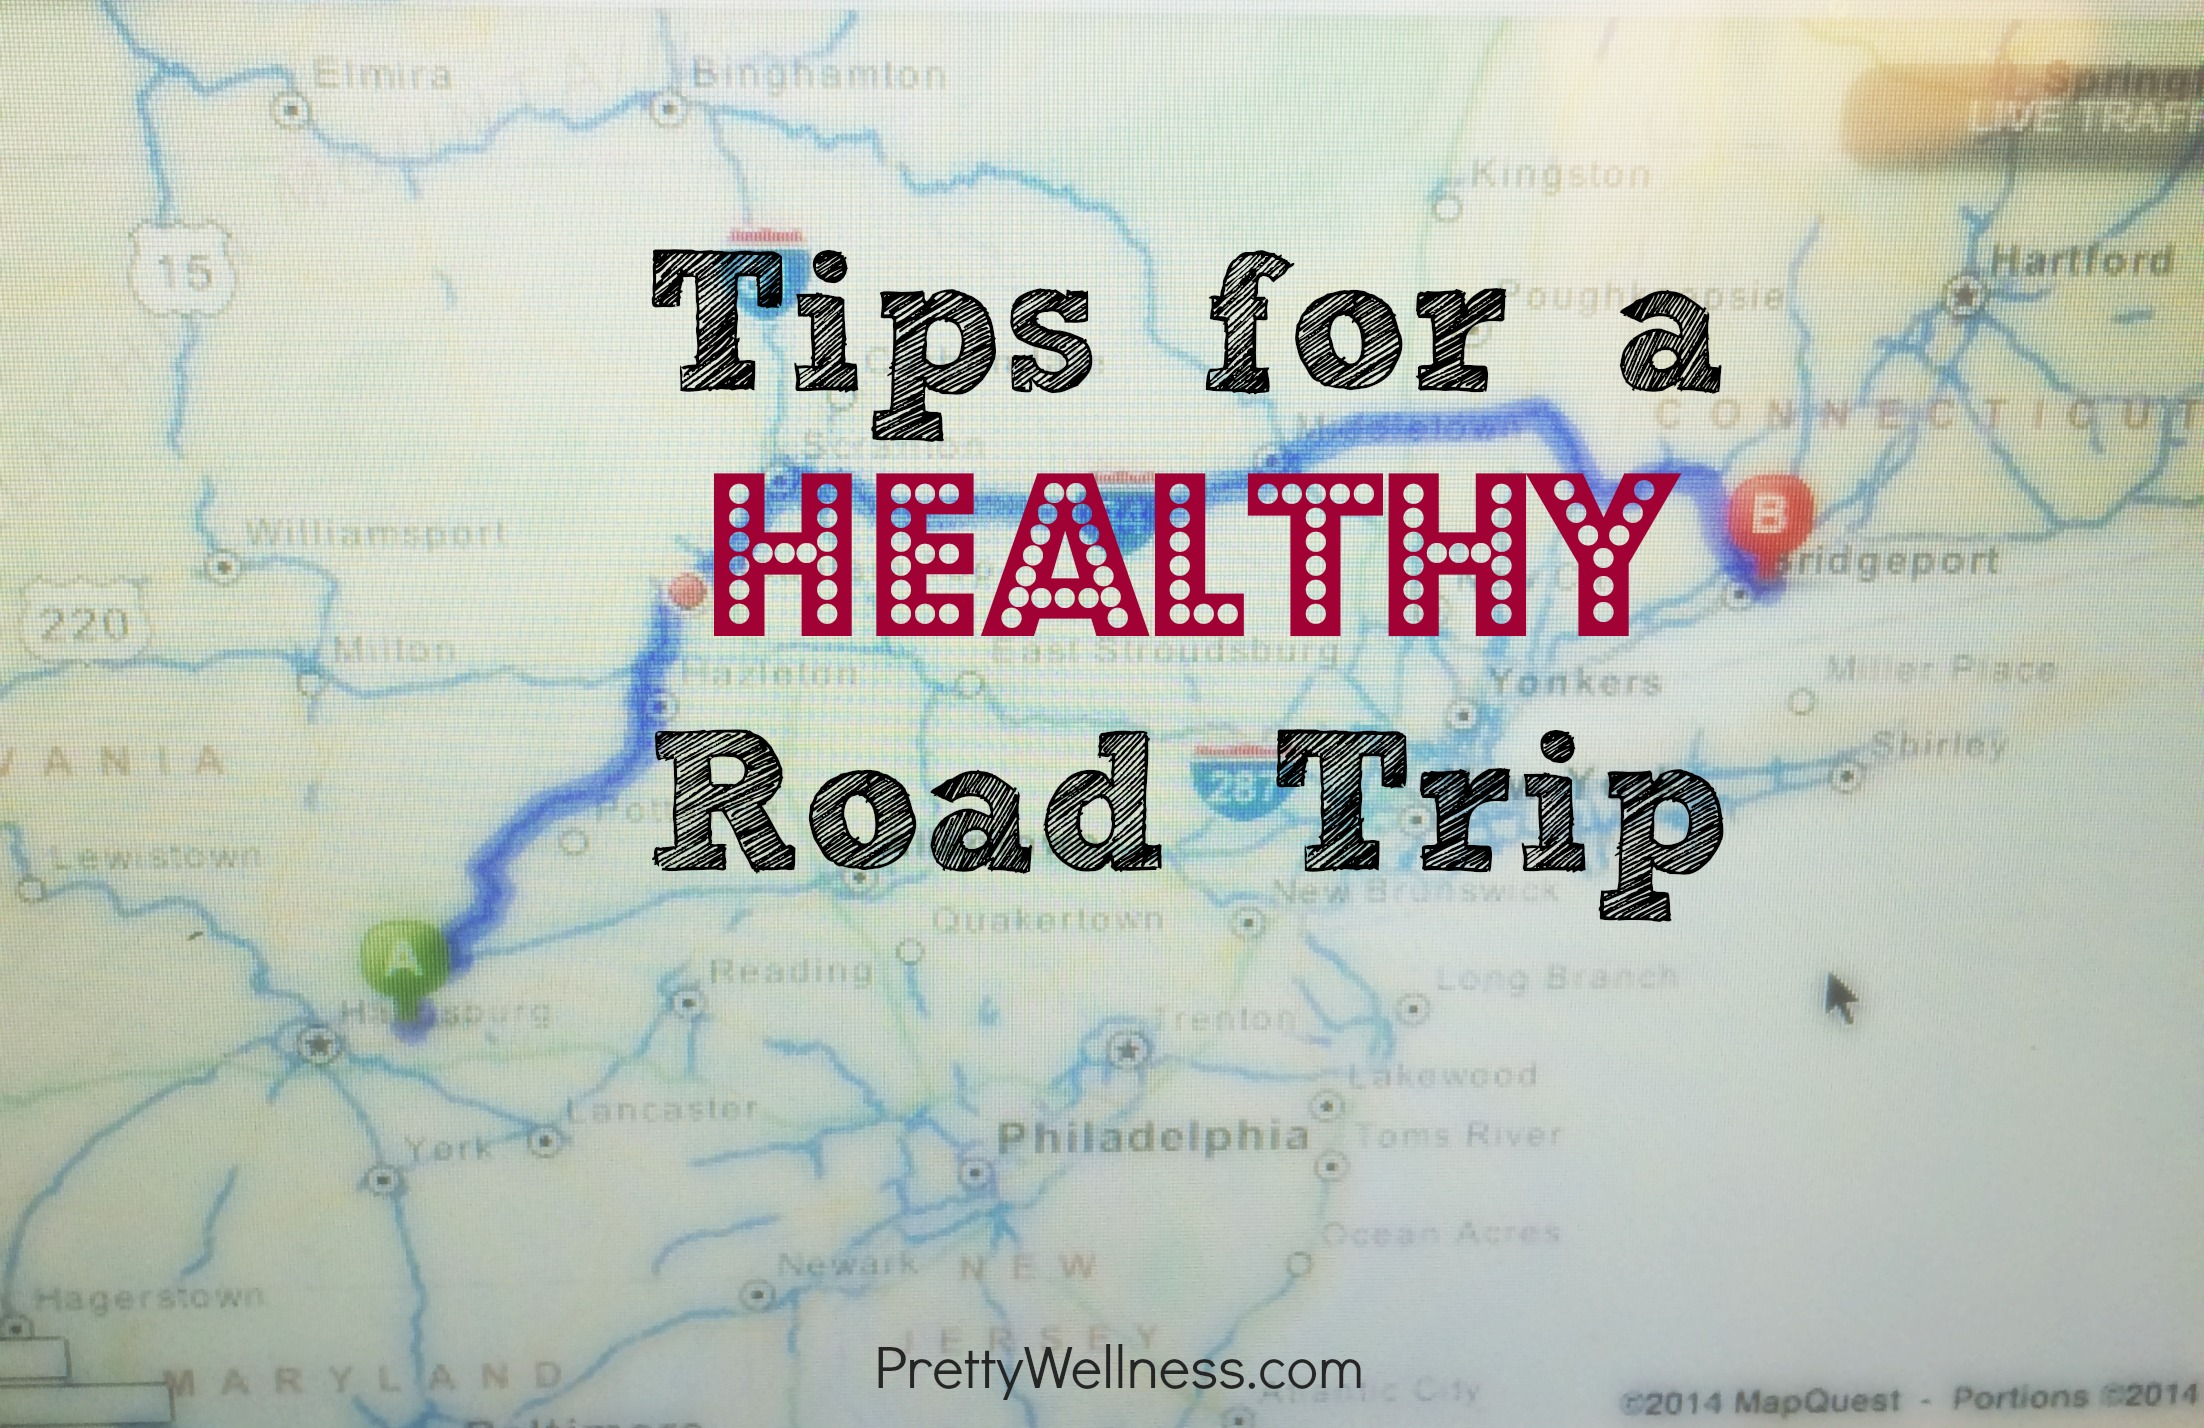 Health & Wellness News & Info Recap, Week Ending 3/16